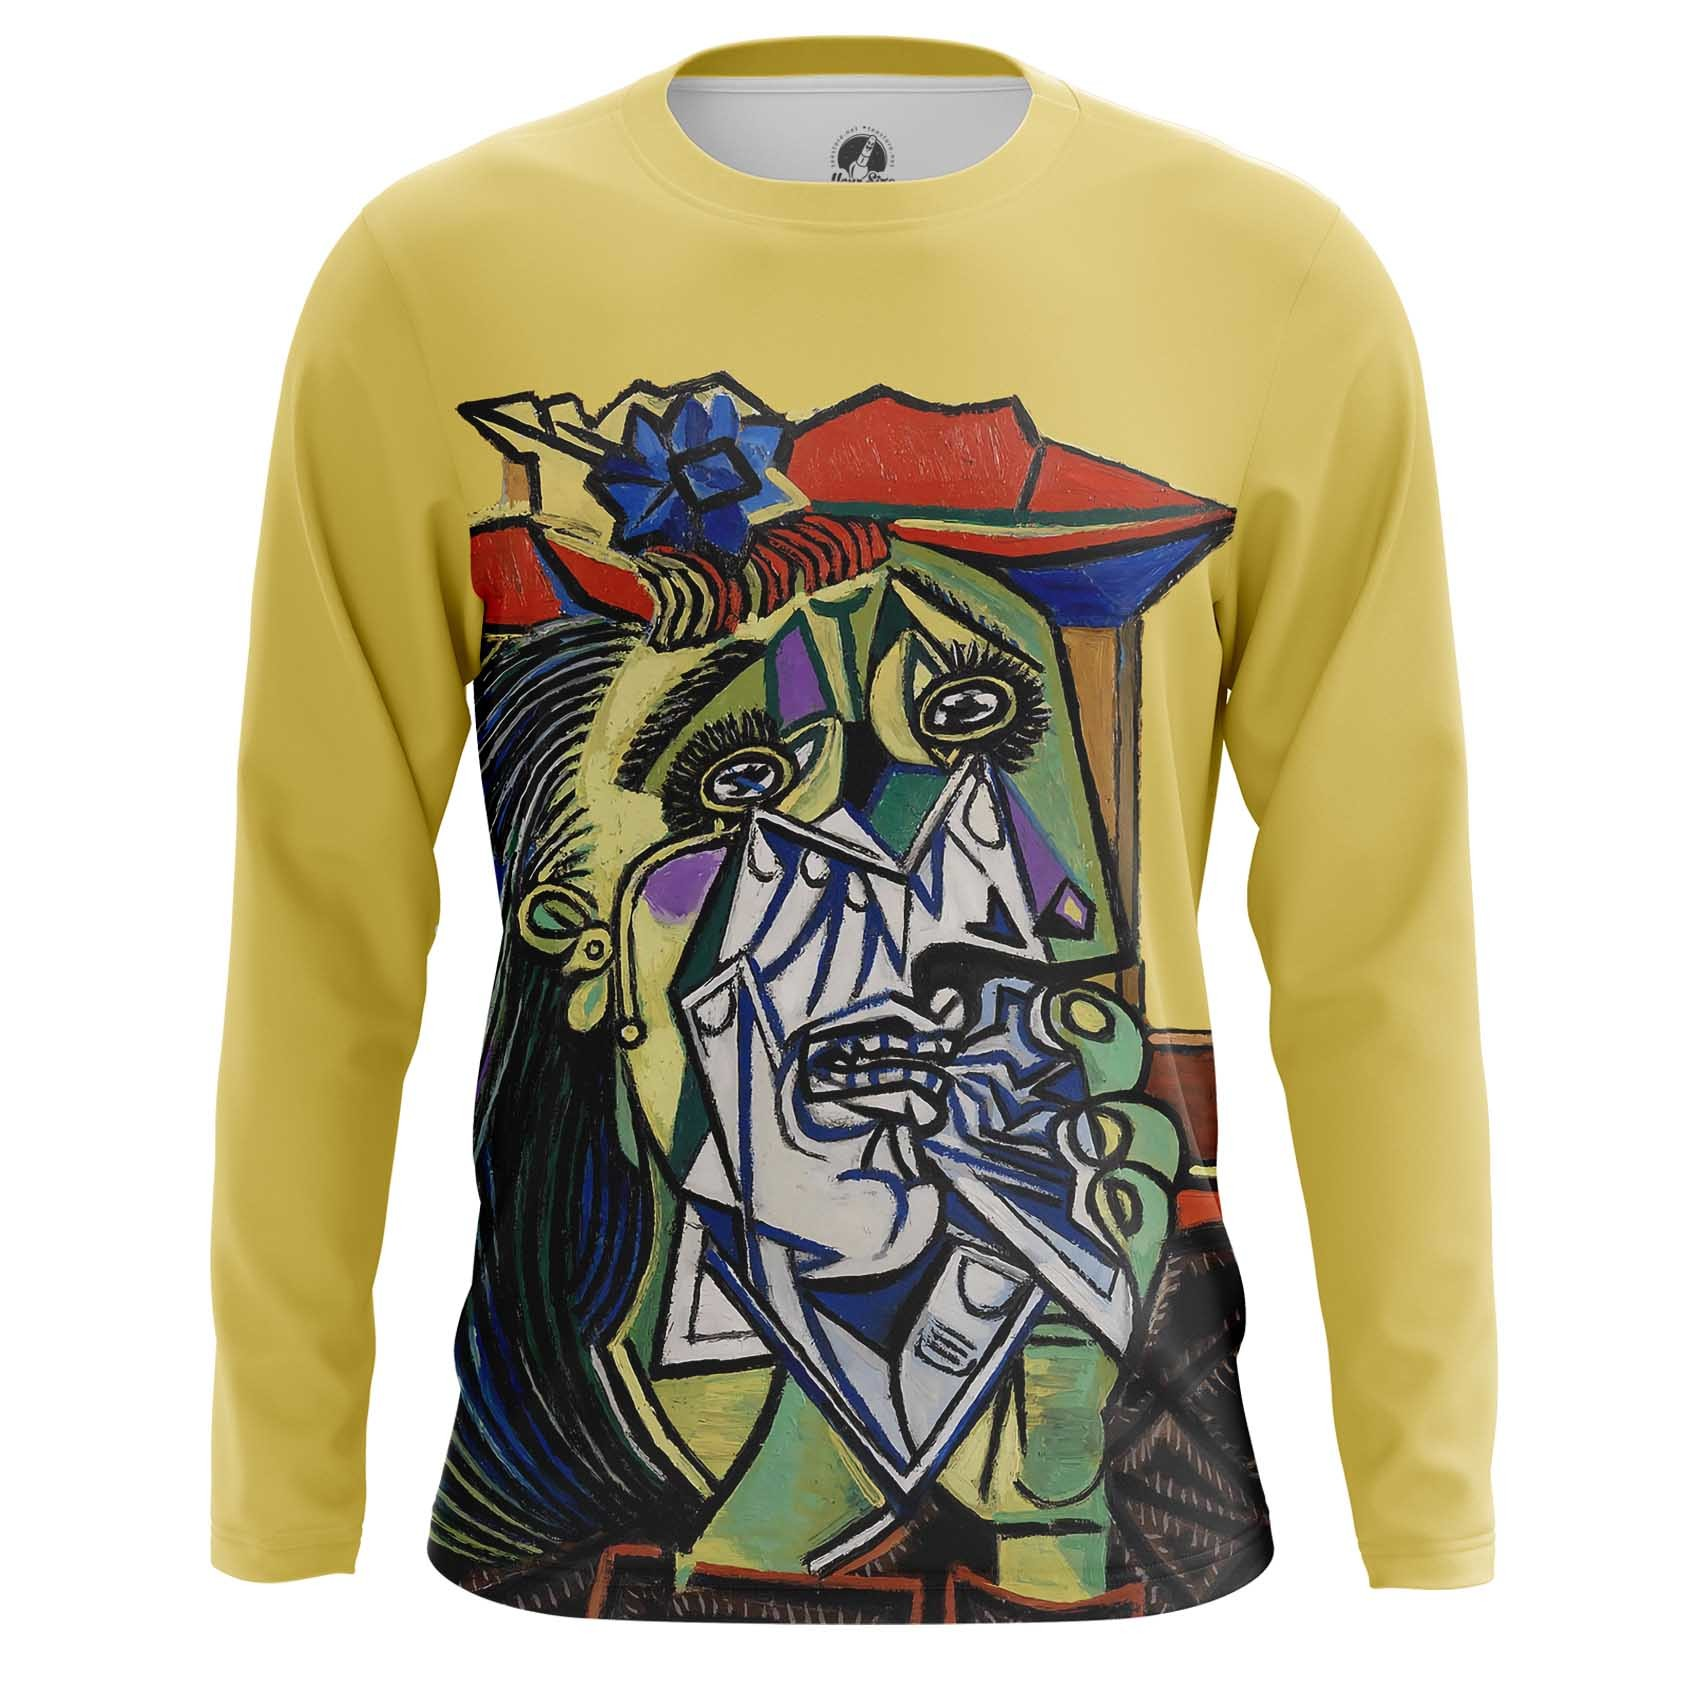 Merchandise T-Shirt Weeping Woman Pablo Picasso Artwork